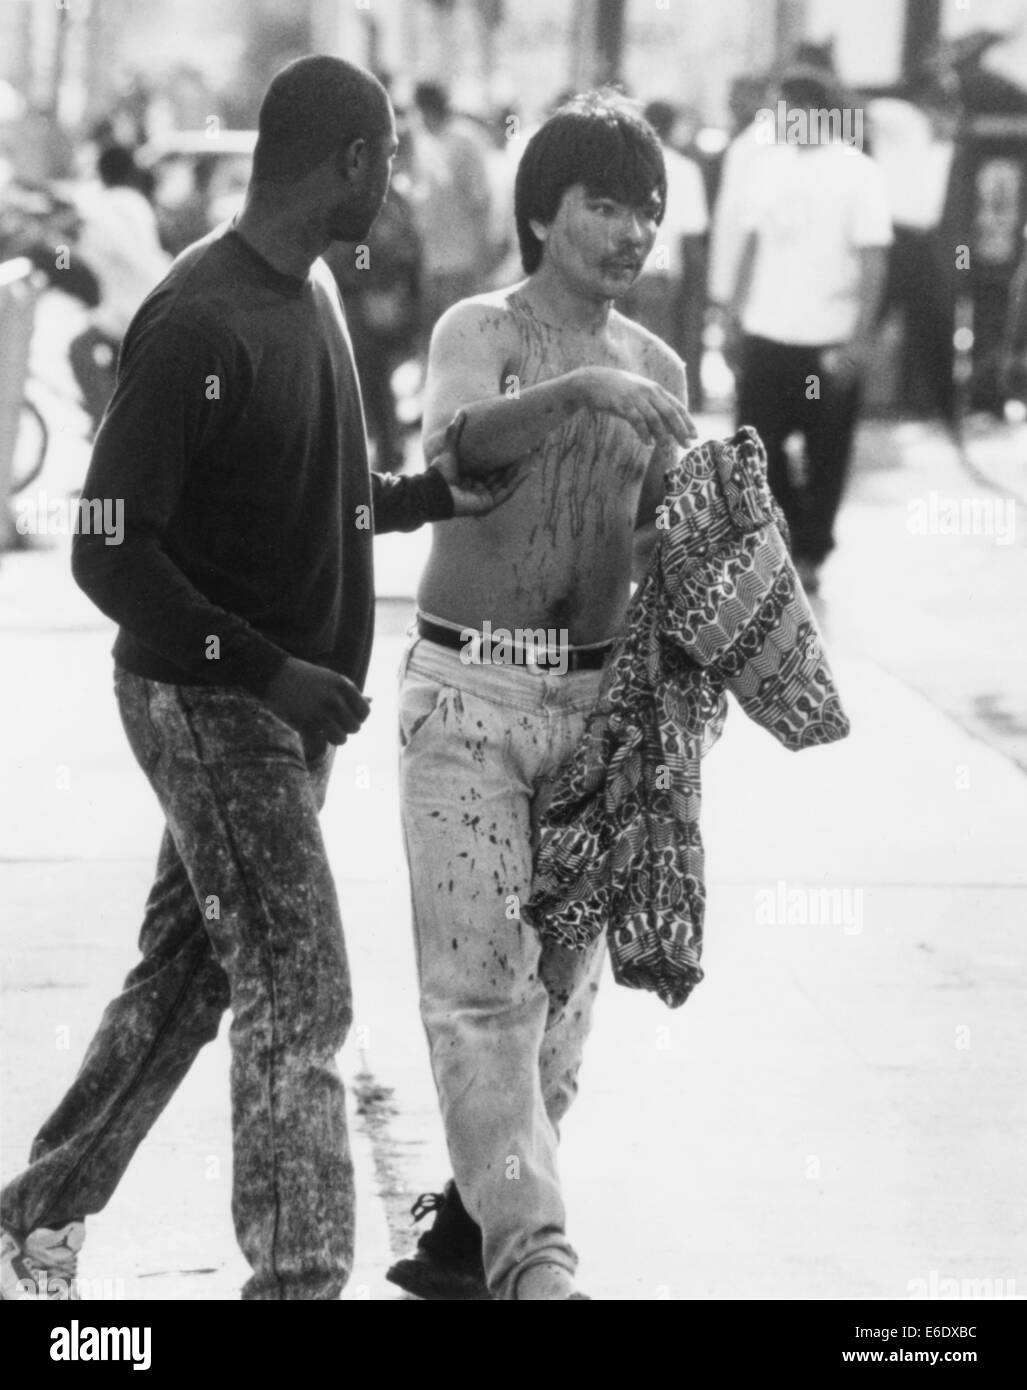 Bloodied Man Being Escorted to Safety During Riots Resulting from Rodney King's Verdict, Los Angeles, California, - Stock Image